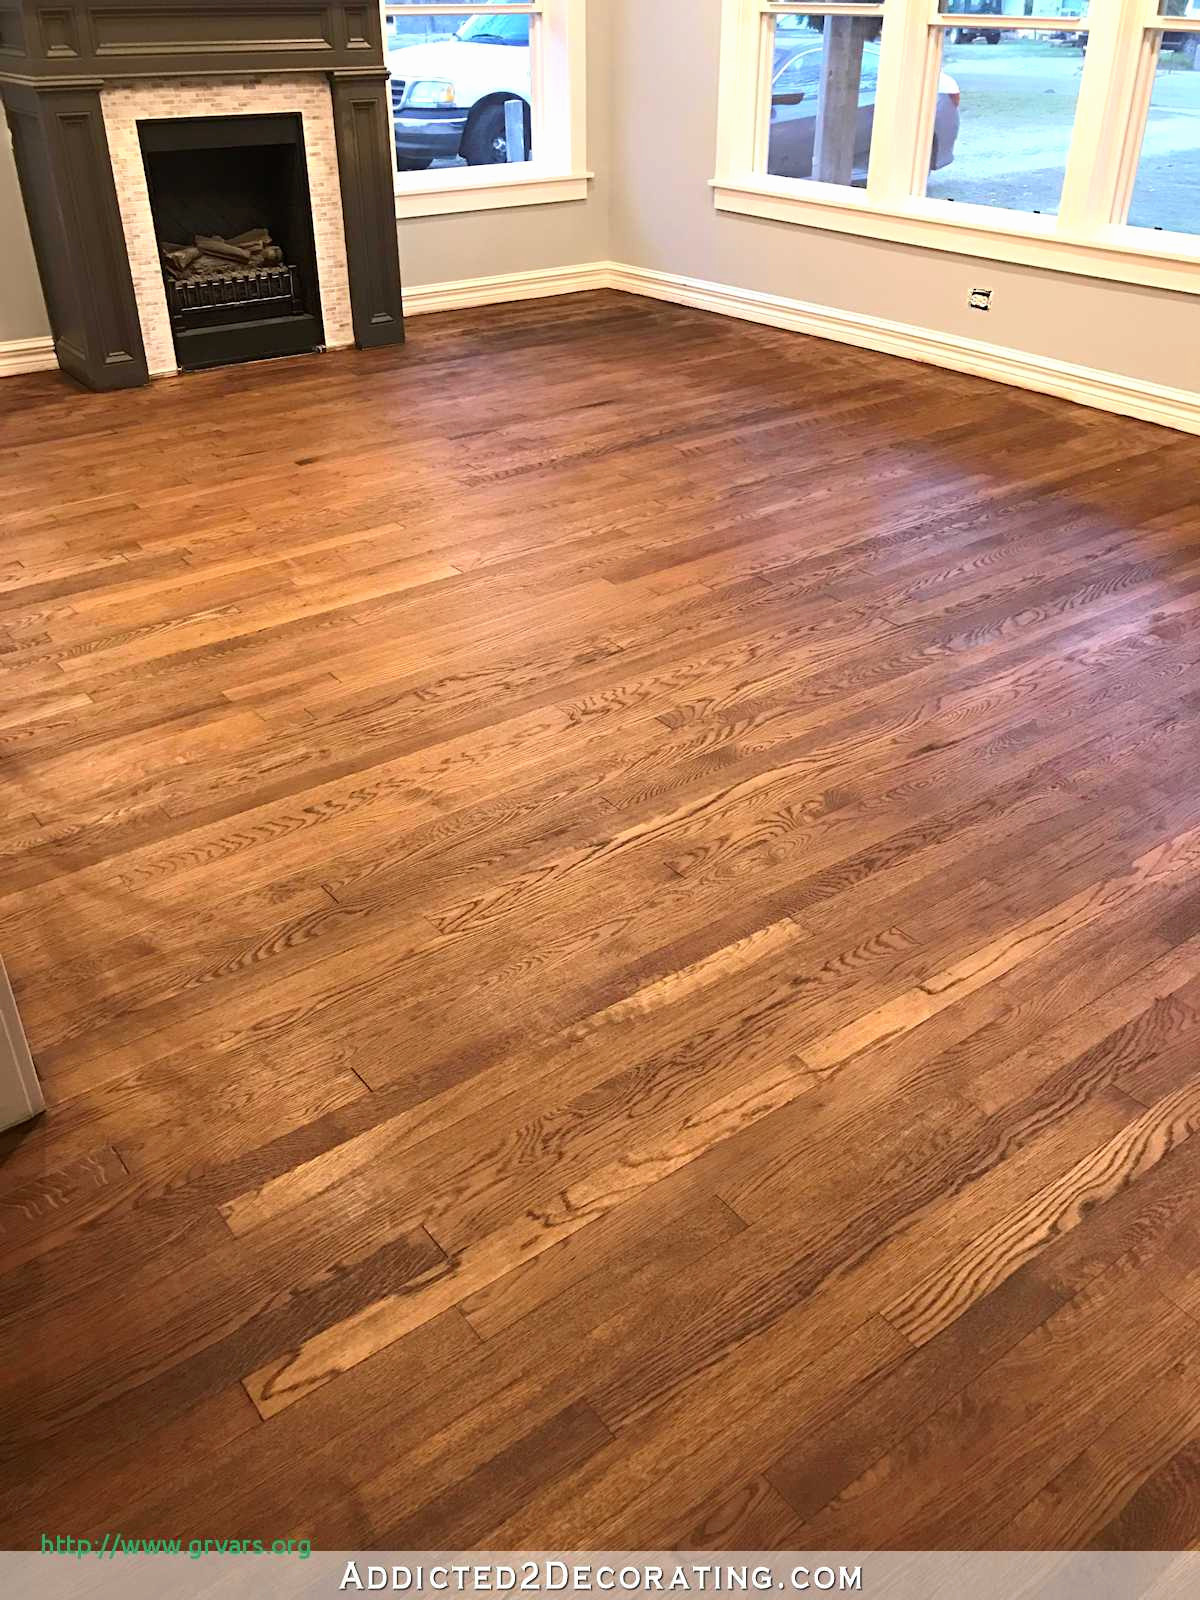 How Much Does Fake Hardwood Floor Cost Of 60 Elegant the Best Of Stained Concrete Floor Cost Calculator Throughout Staining Red Oak Hardwood Floors 8a Living Room and Entryway